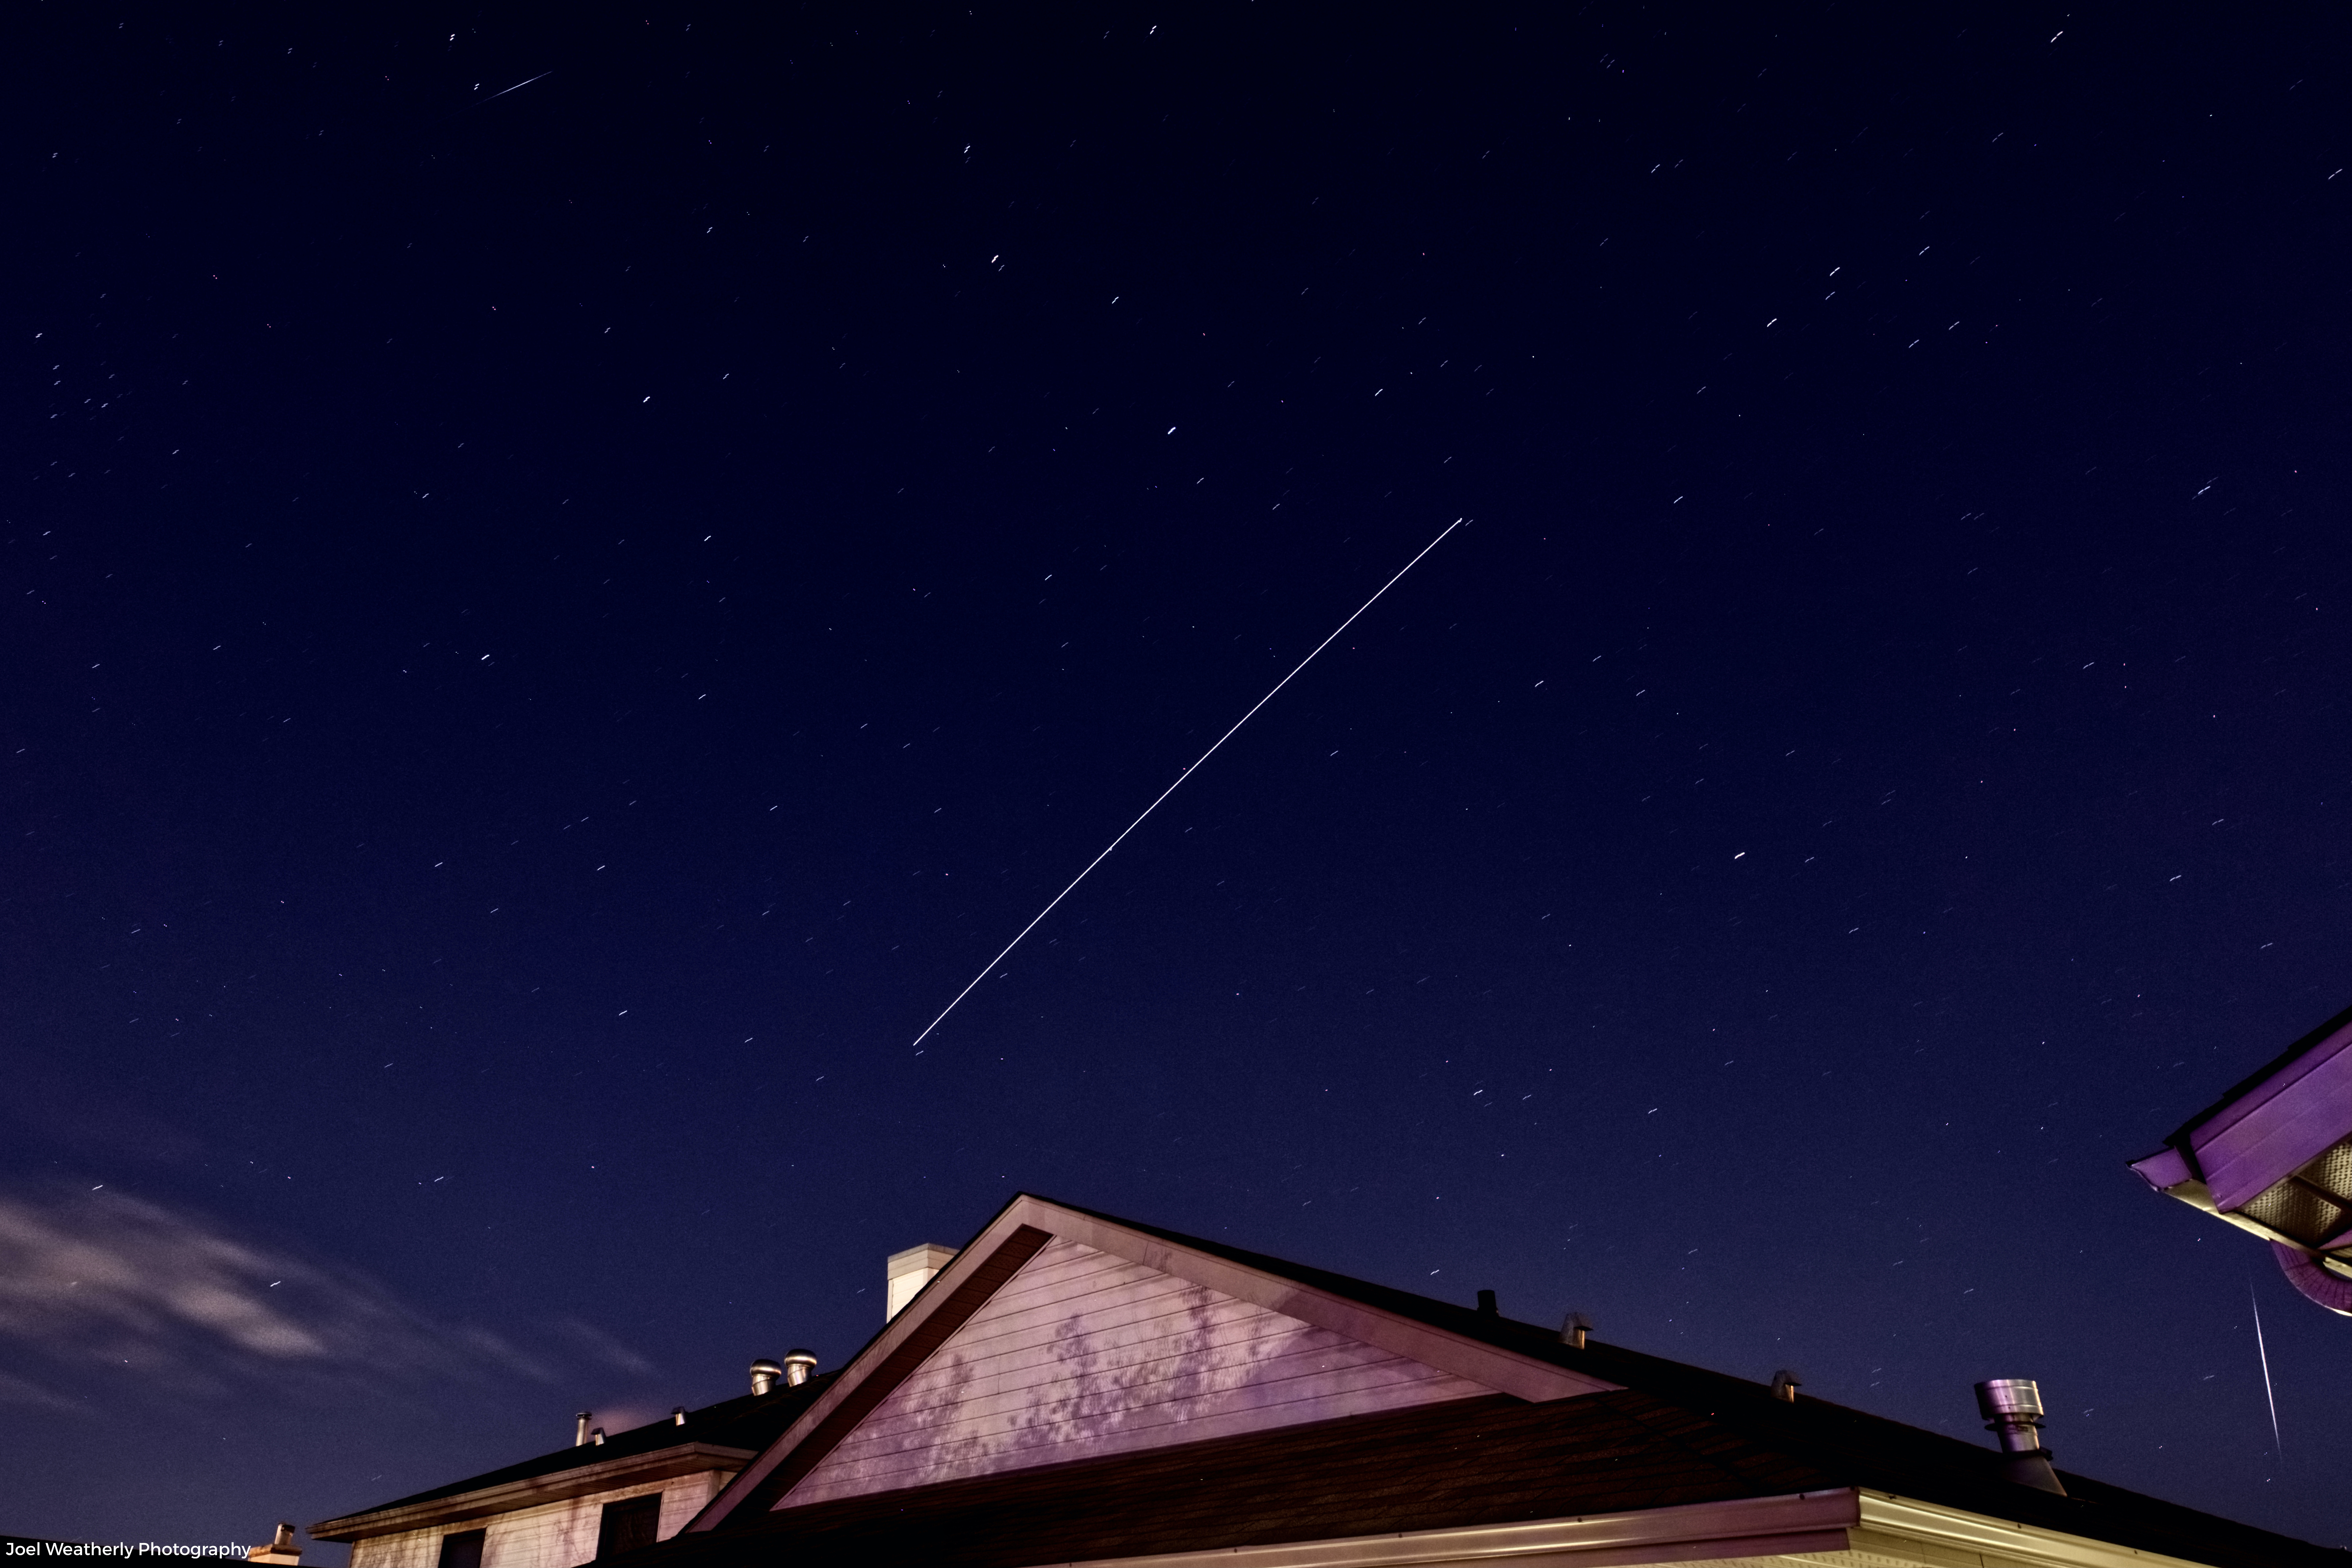 ISS with Meteor